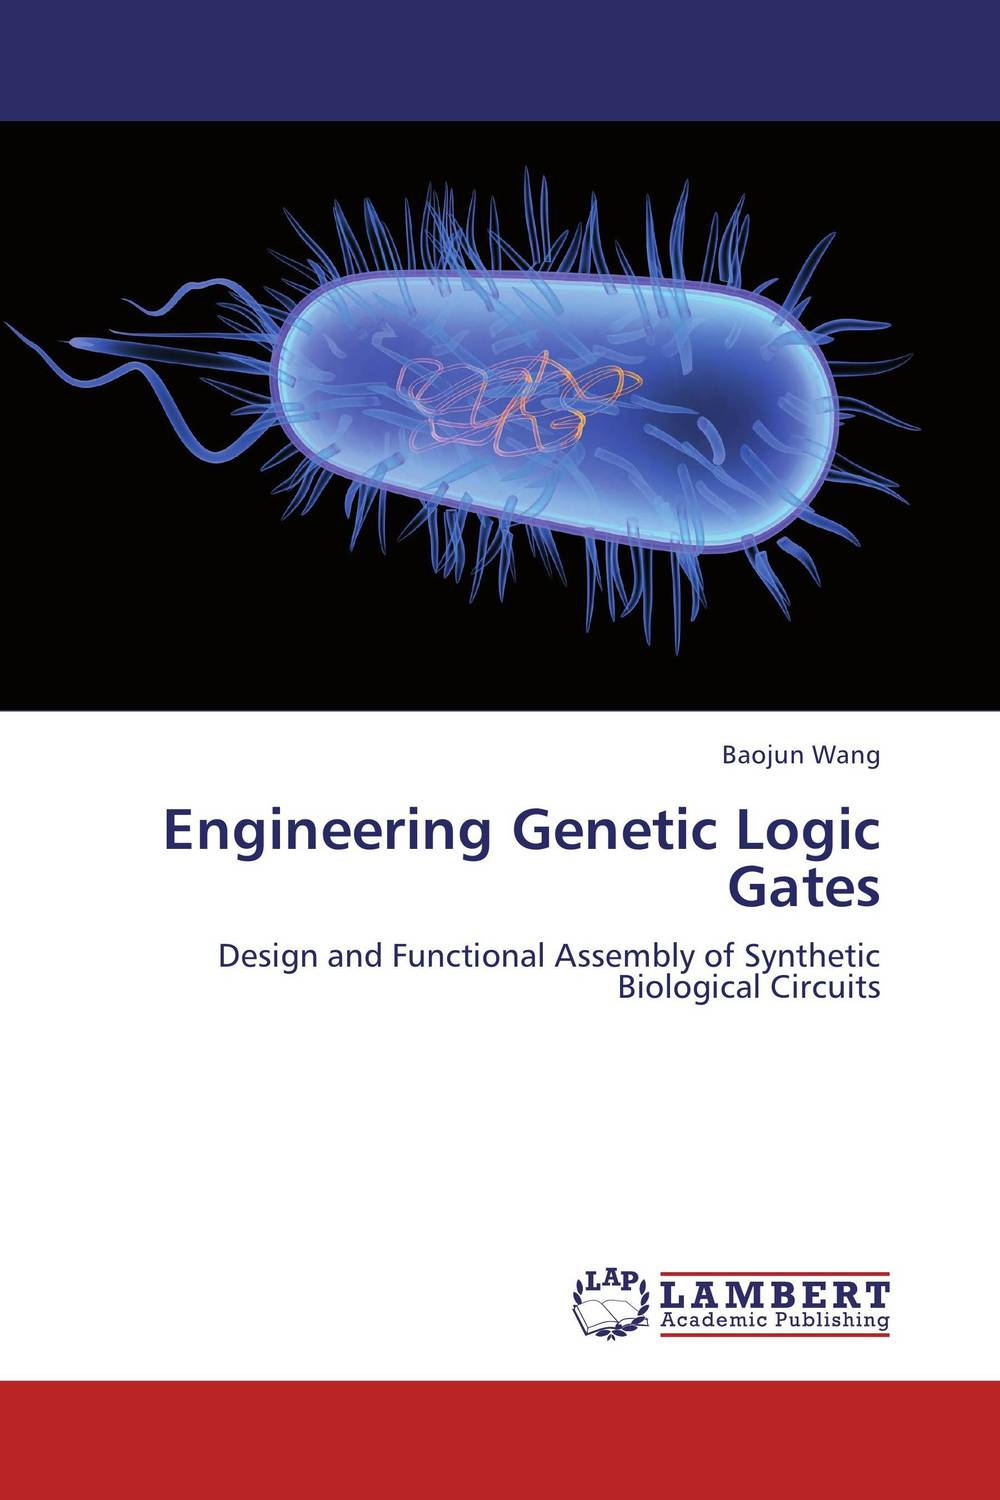 Engineering Genetic Logic Gates prasanta kumar hota and anil kumar singh synthetic photoresponsive systems